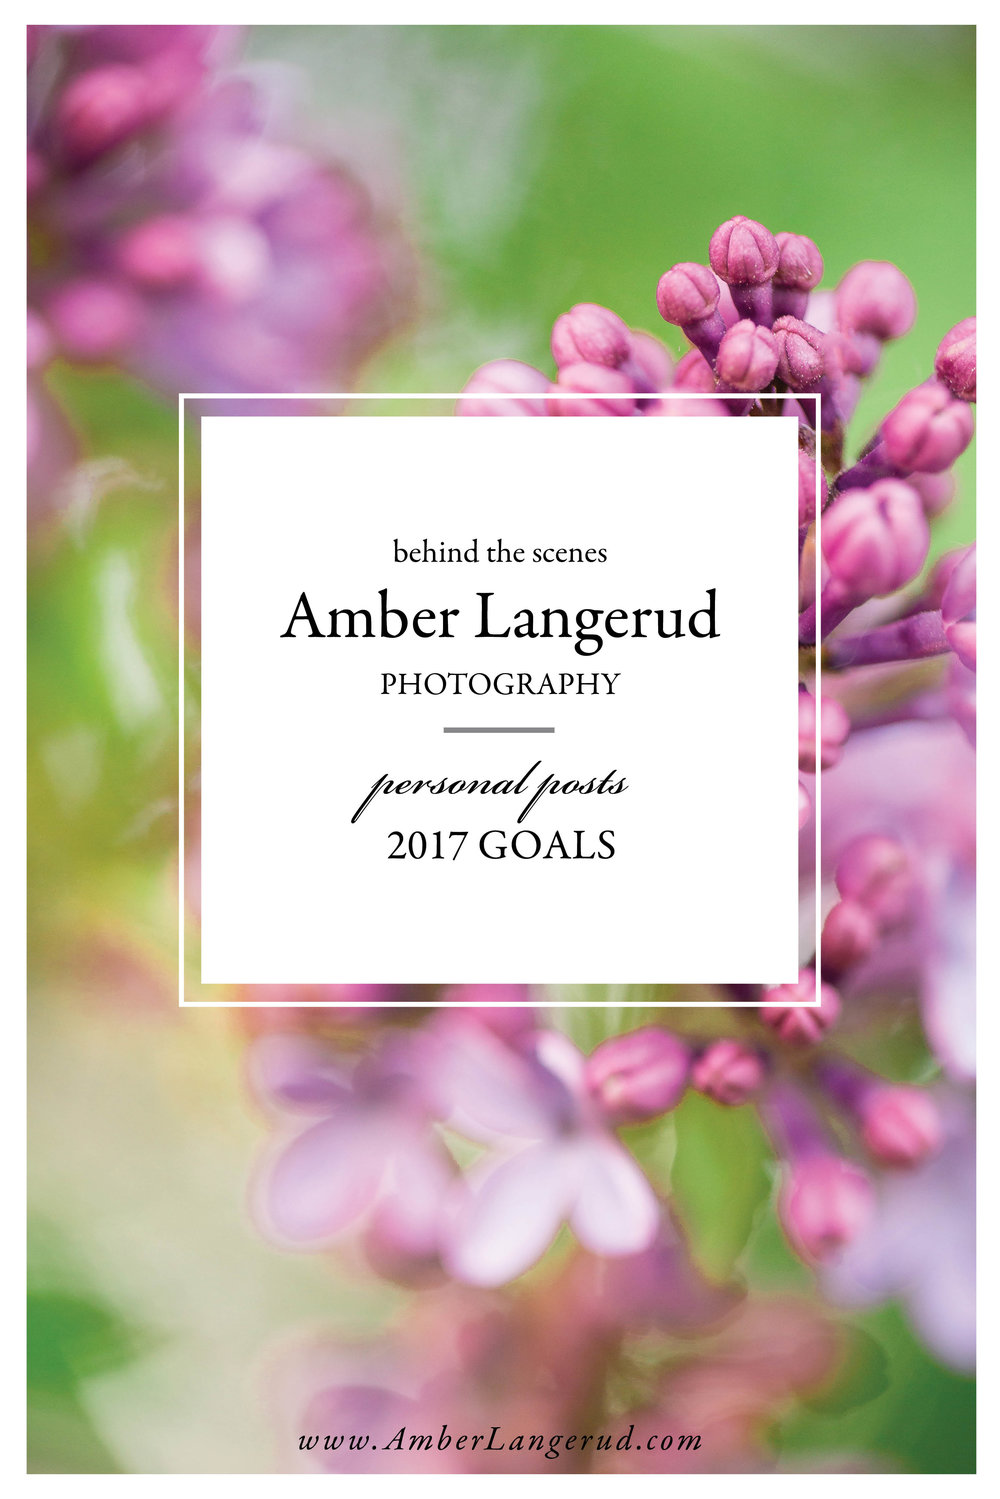 Amber Langerud Photography personal post - behind the scenes and 2017 goals